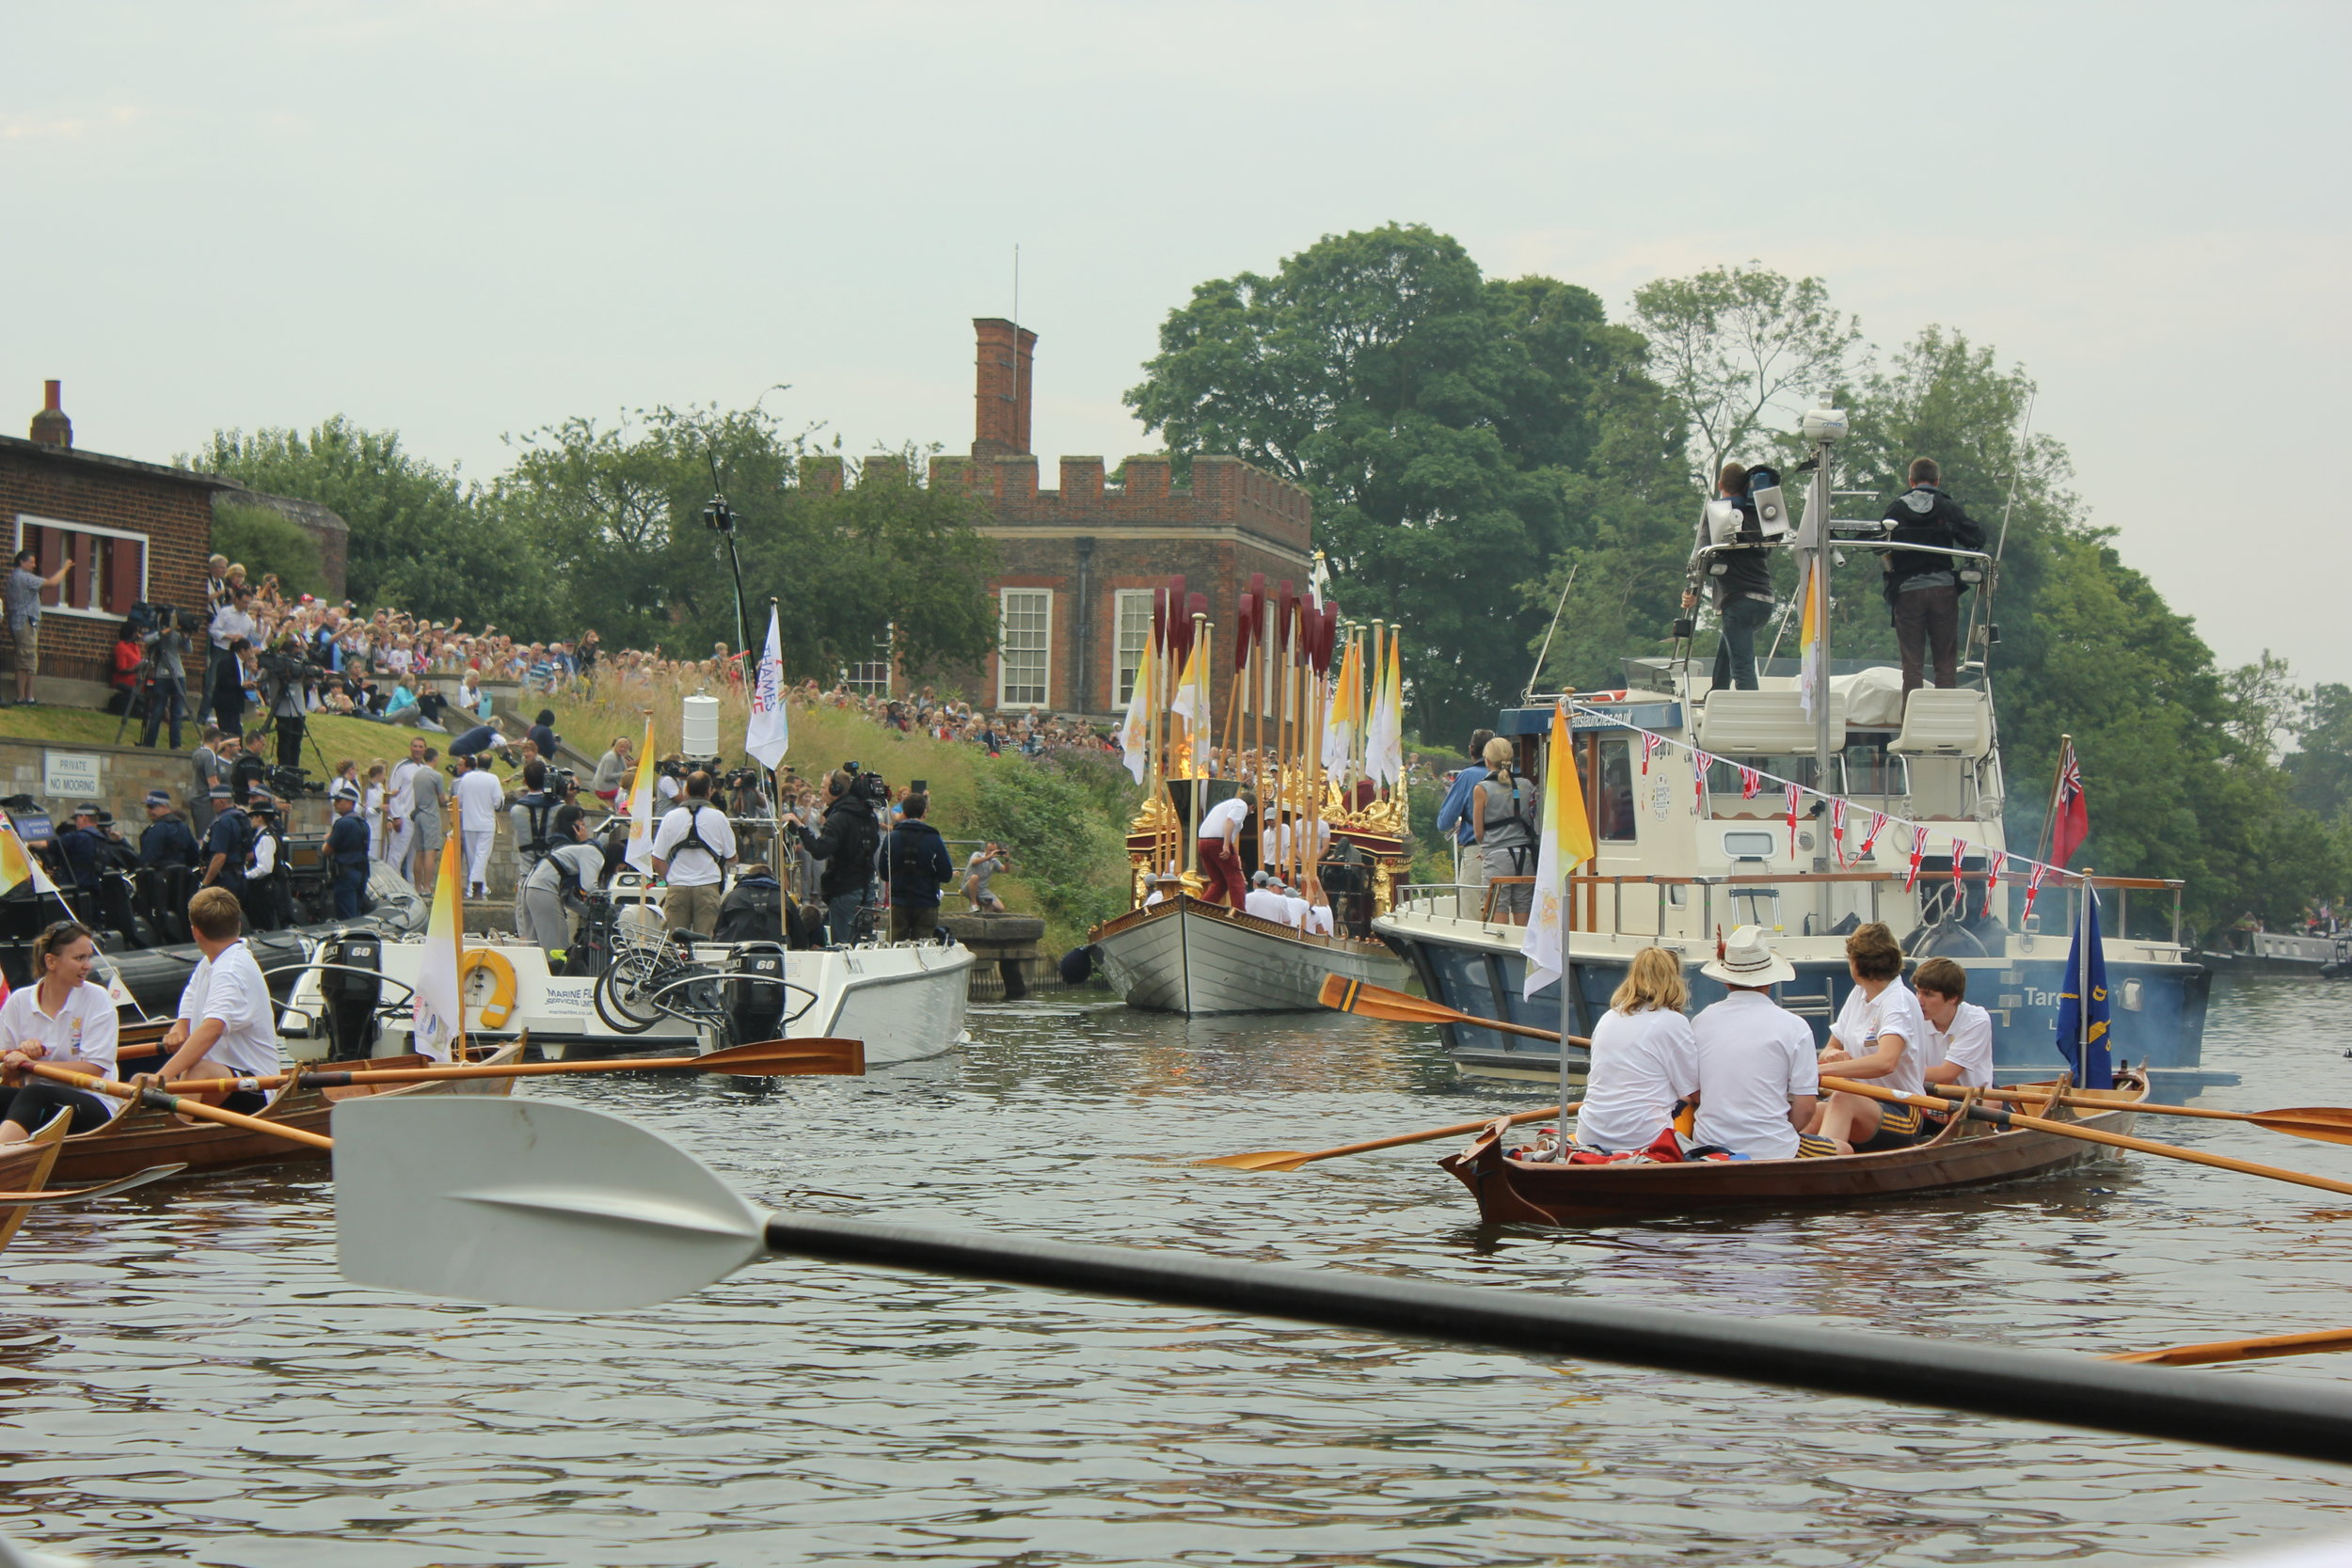 Rowing with the Olympic Torch